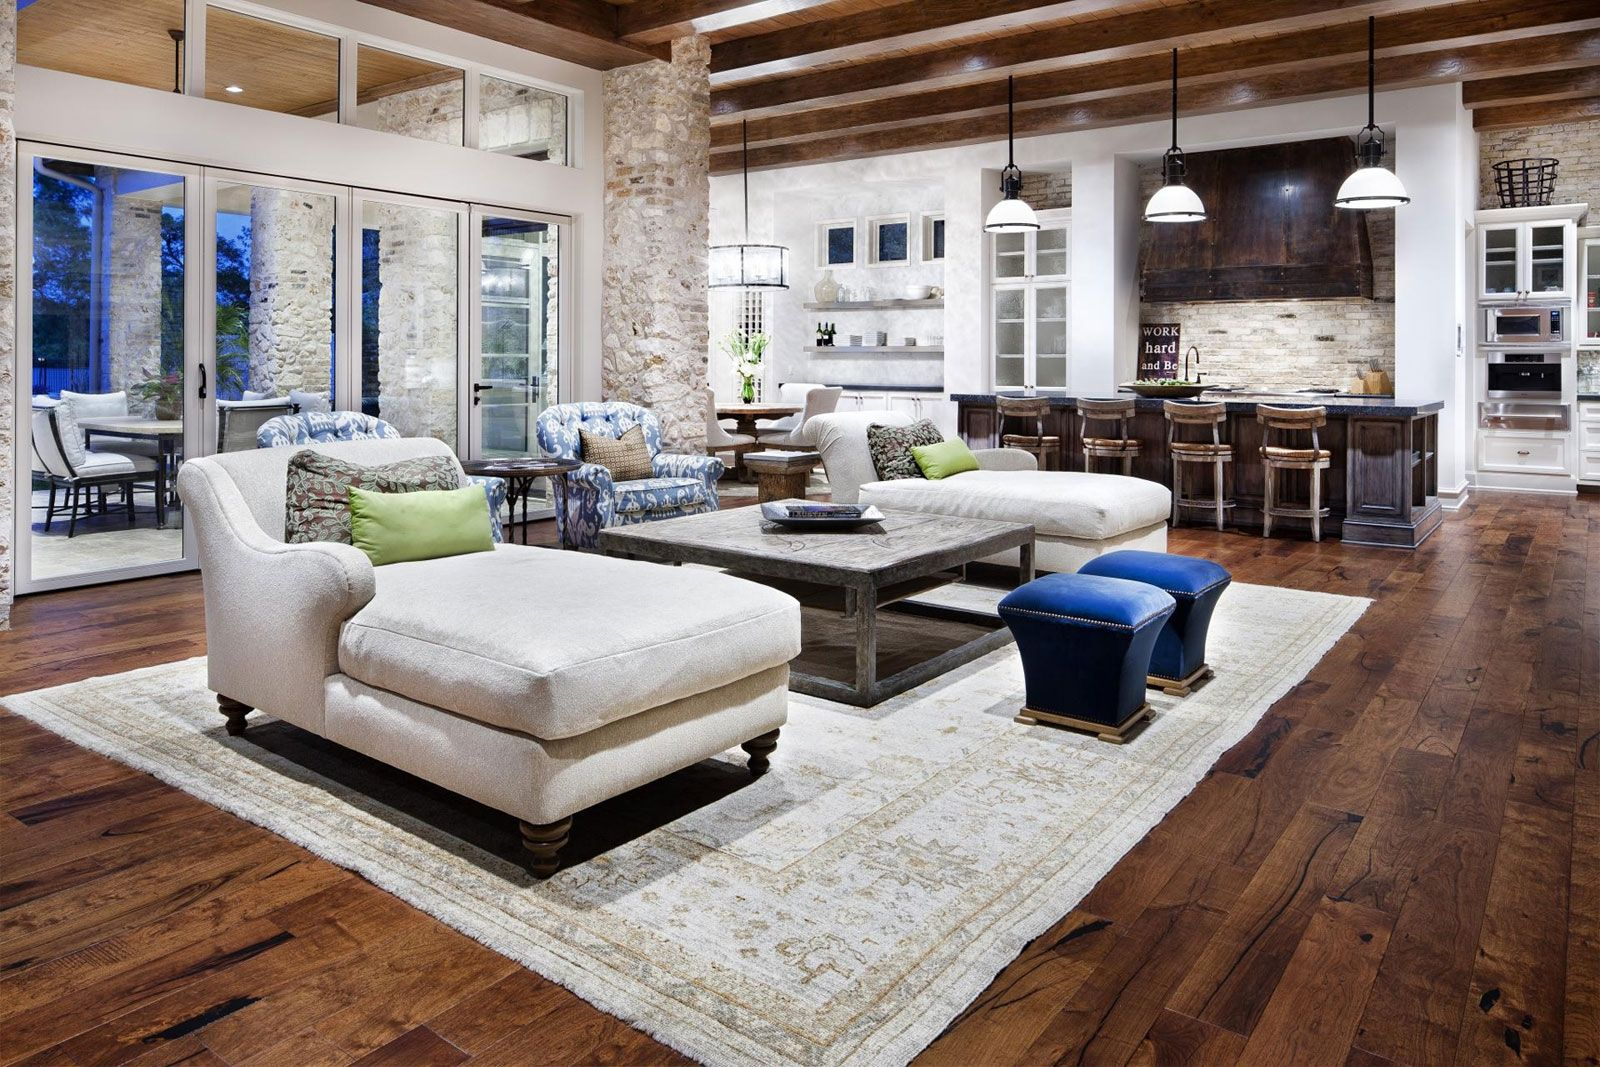 Chaise Lounge Decorating Ideas Large Rustic Modern Living Room